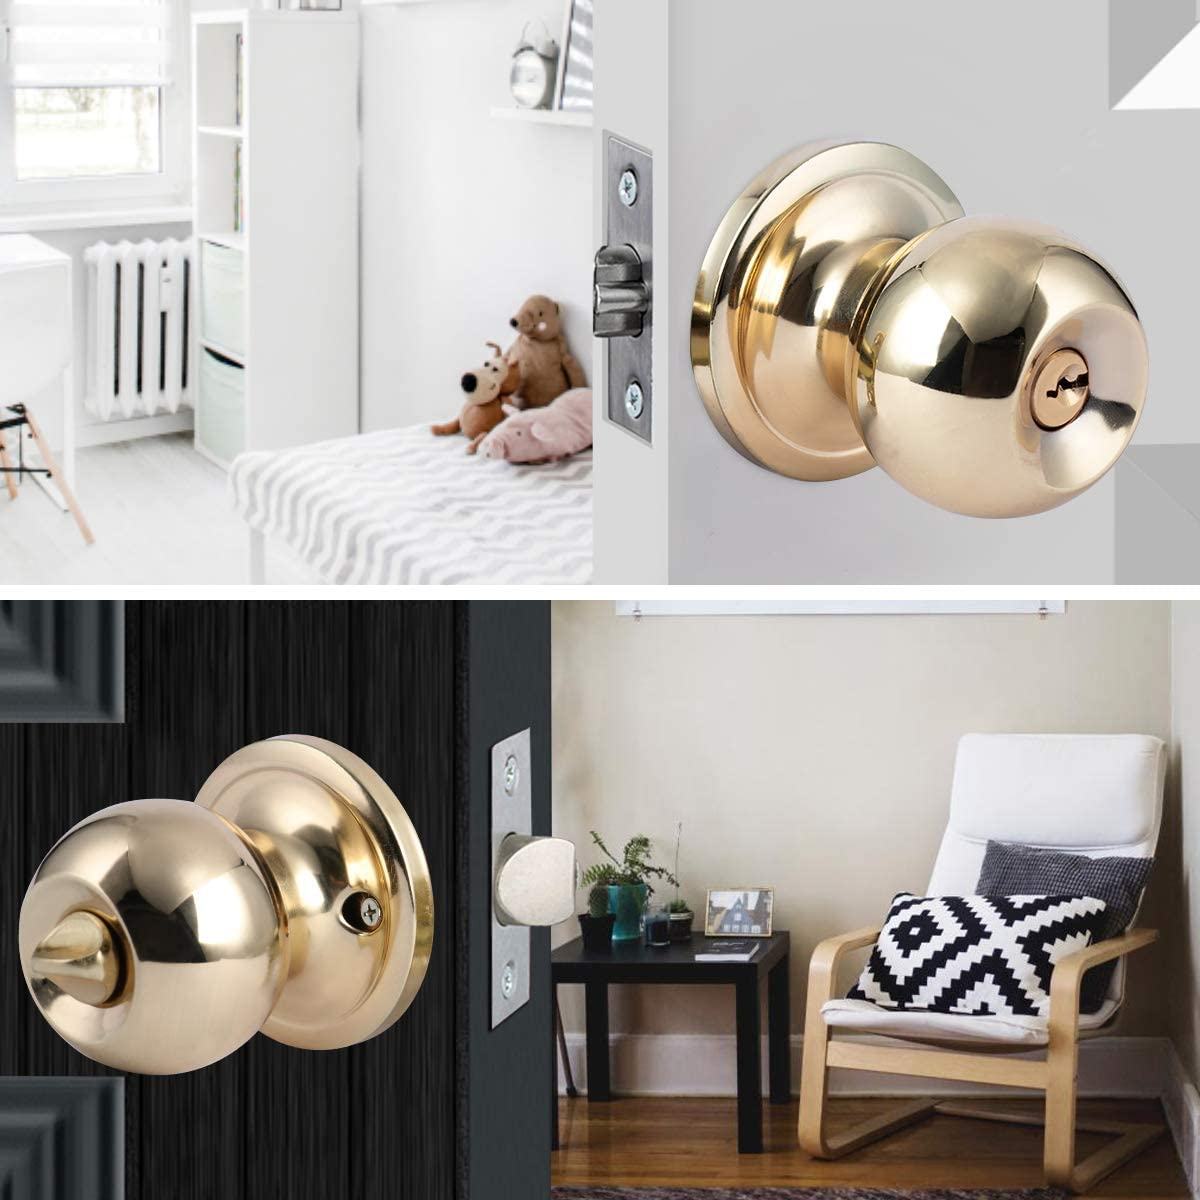 XIUDI Interior Privacy Door Knobs with Lock and Key Bronze,Bedroom Doorknob with Lock Keyed,Ball Door Handle,Privacy and Bedroom Classic Bronze